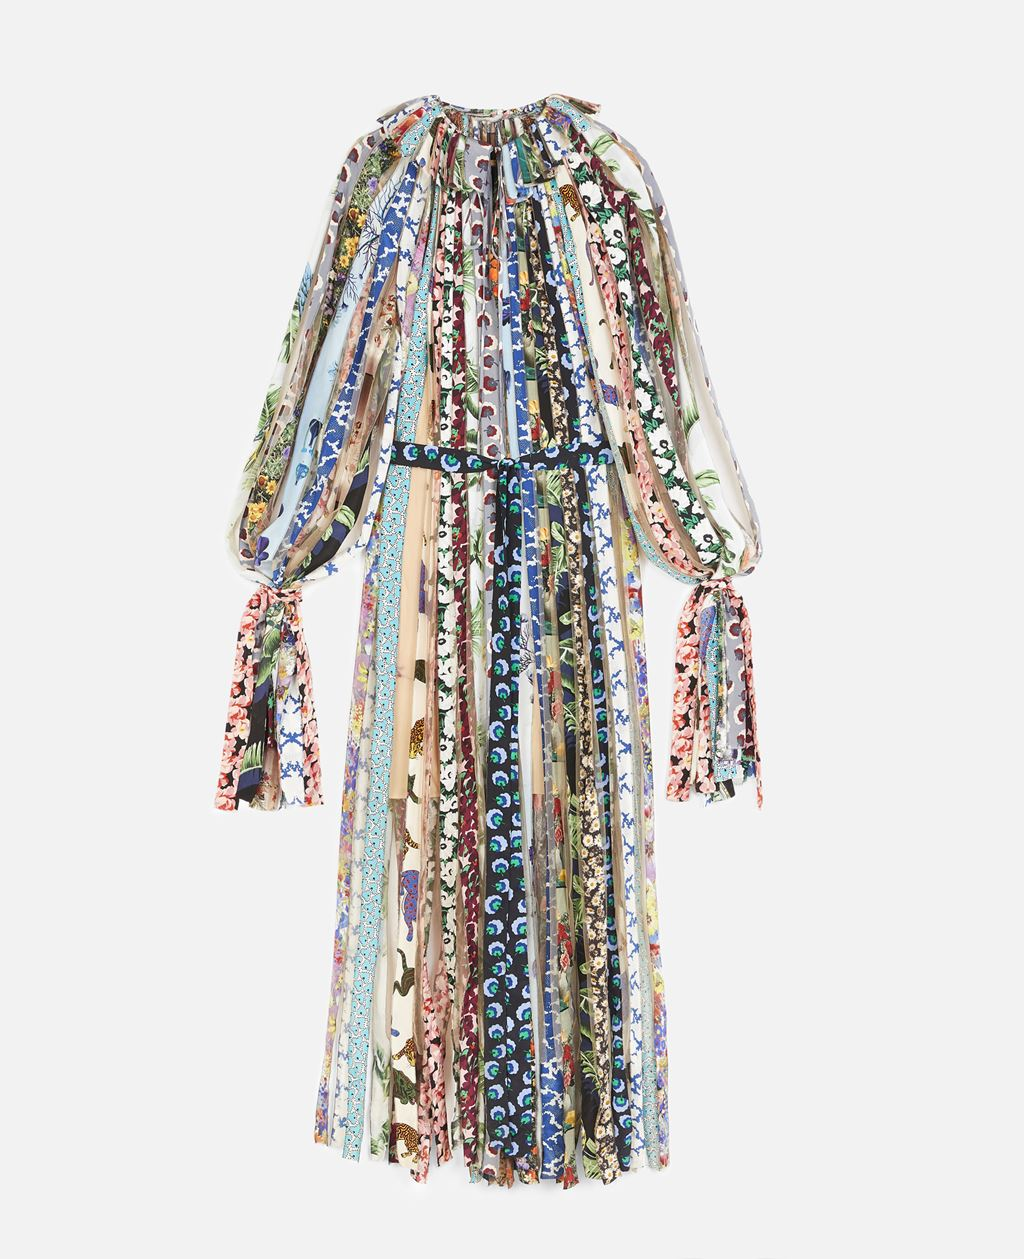 Stella Mccartney Silks STELLA MCCARTNEY MULTICOLOUR GABRIELA MAXI DRESS